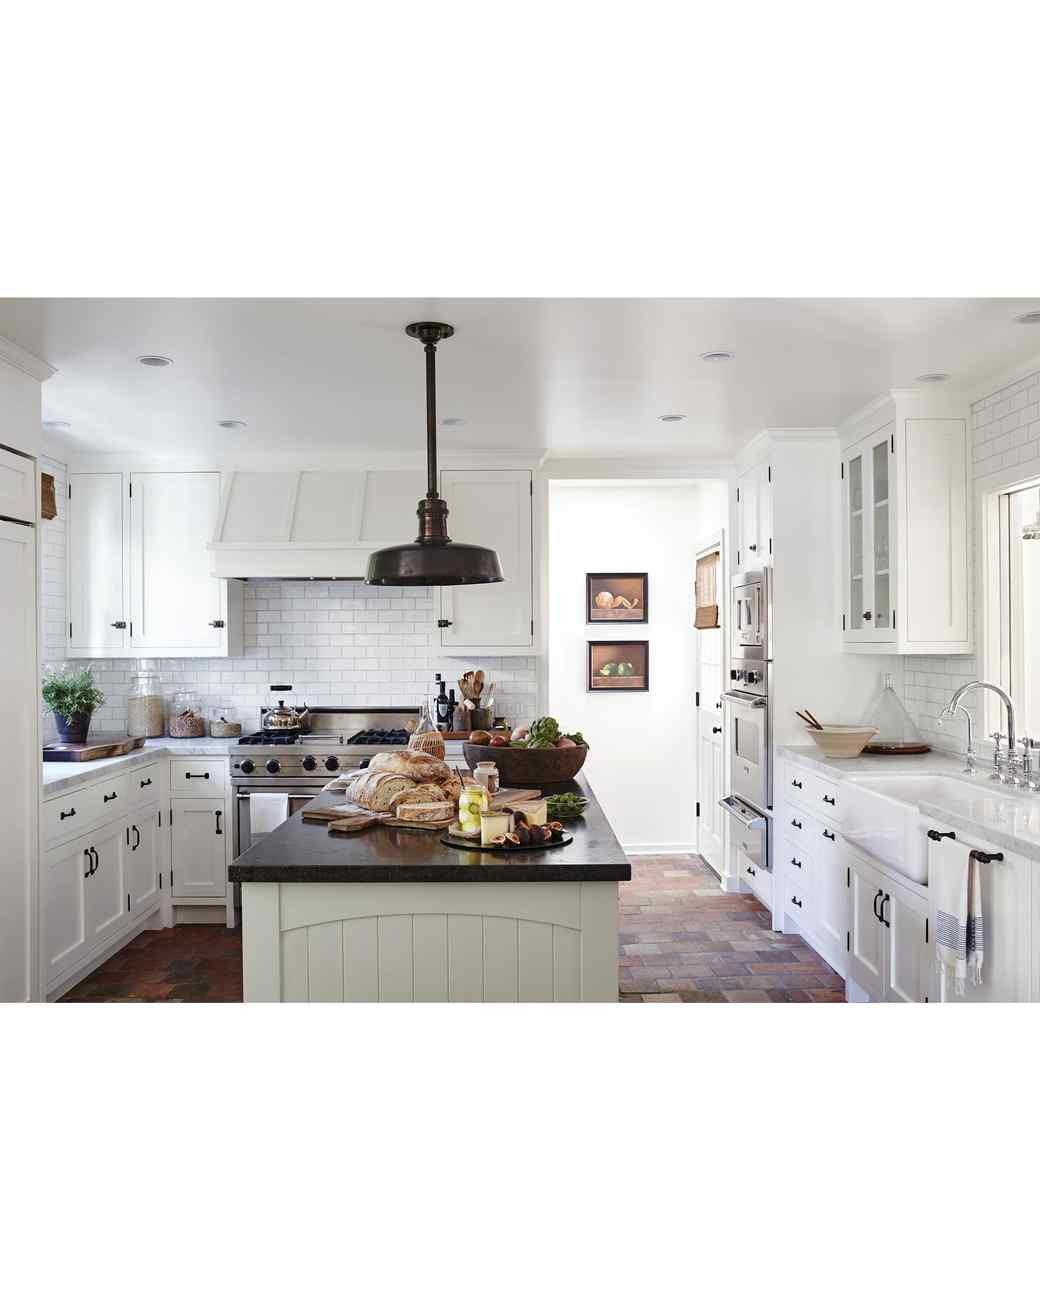 lurie-home-furniture-kitchen-288-d112278.jpg